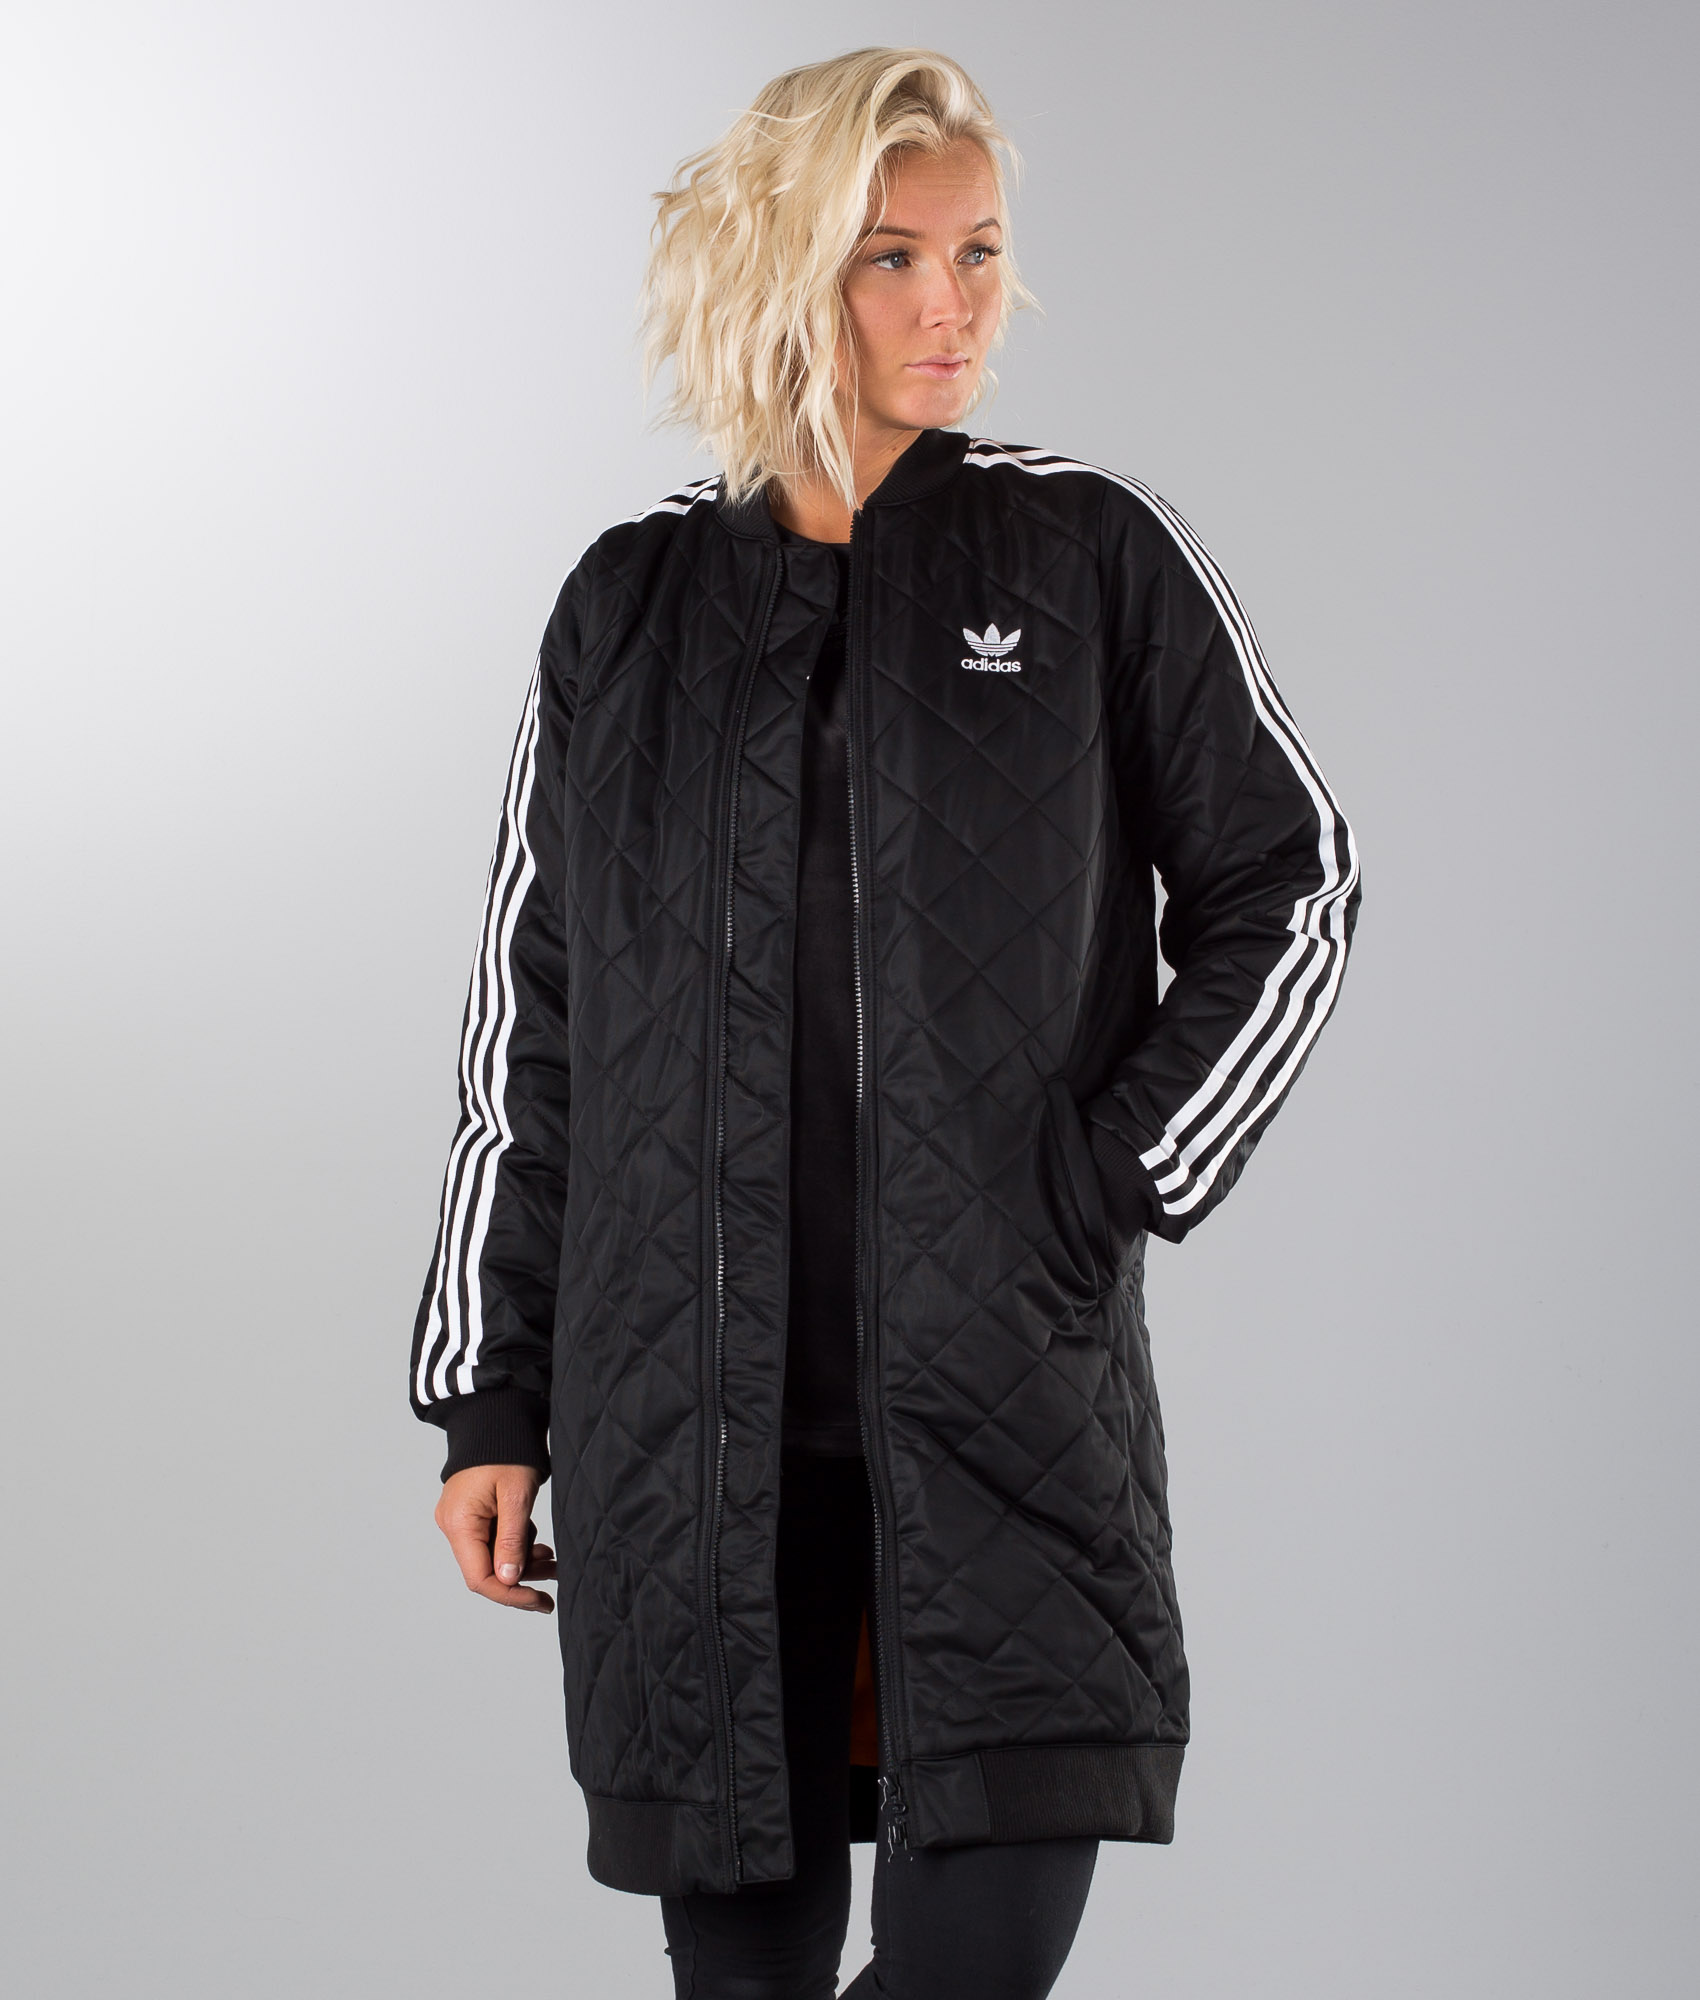 Adidas Originals Long Bomber Jacket Black